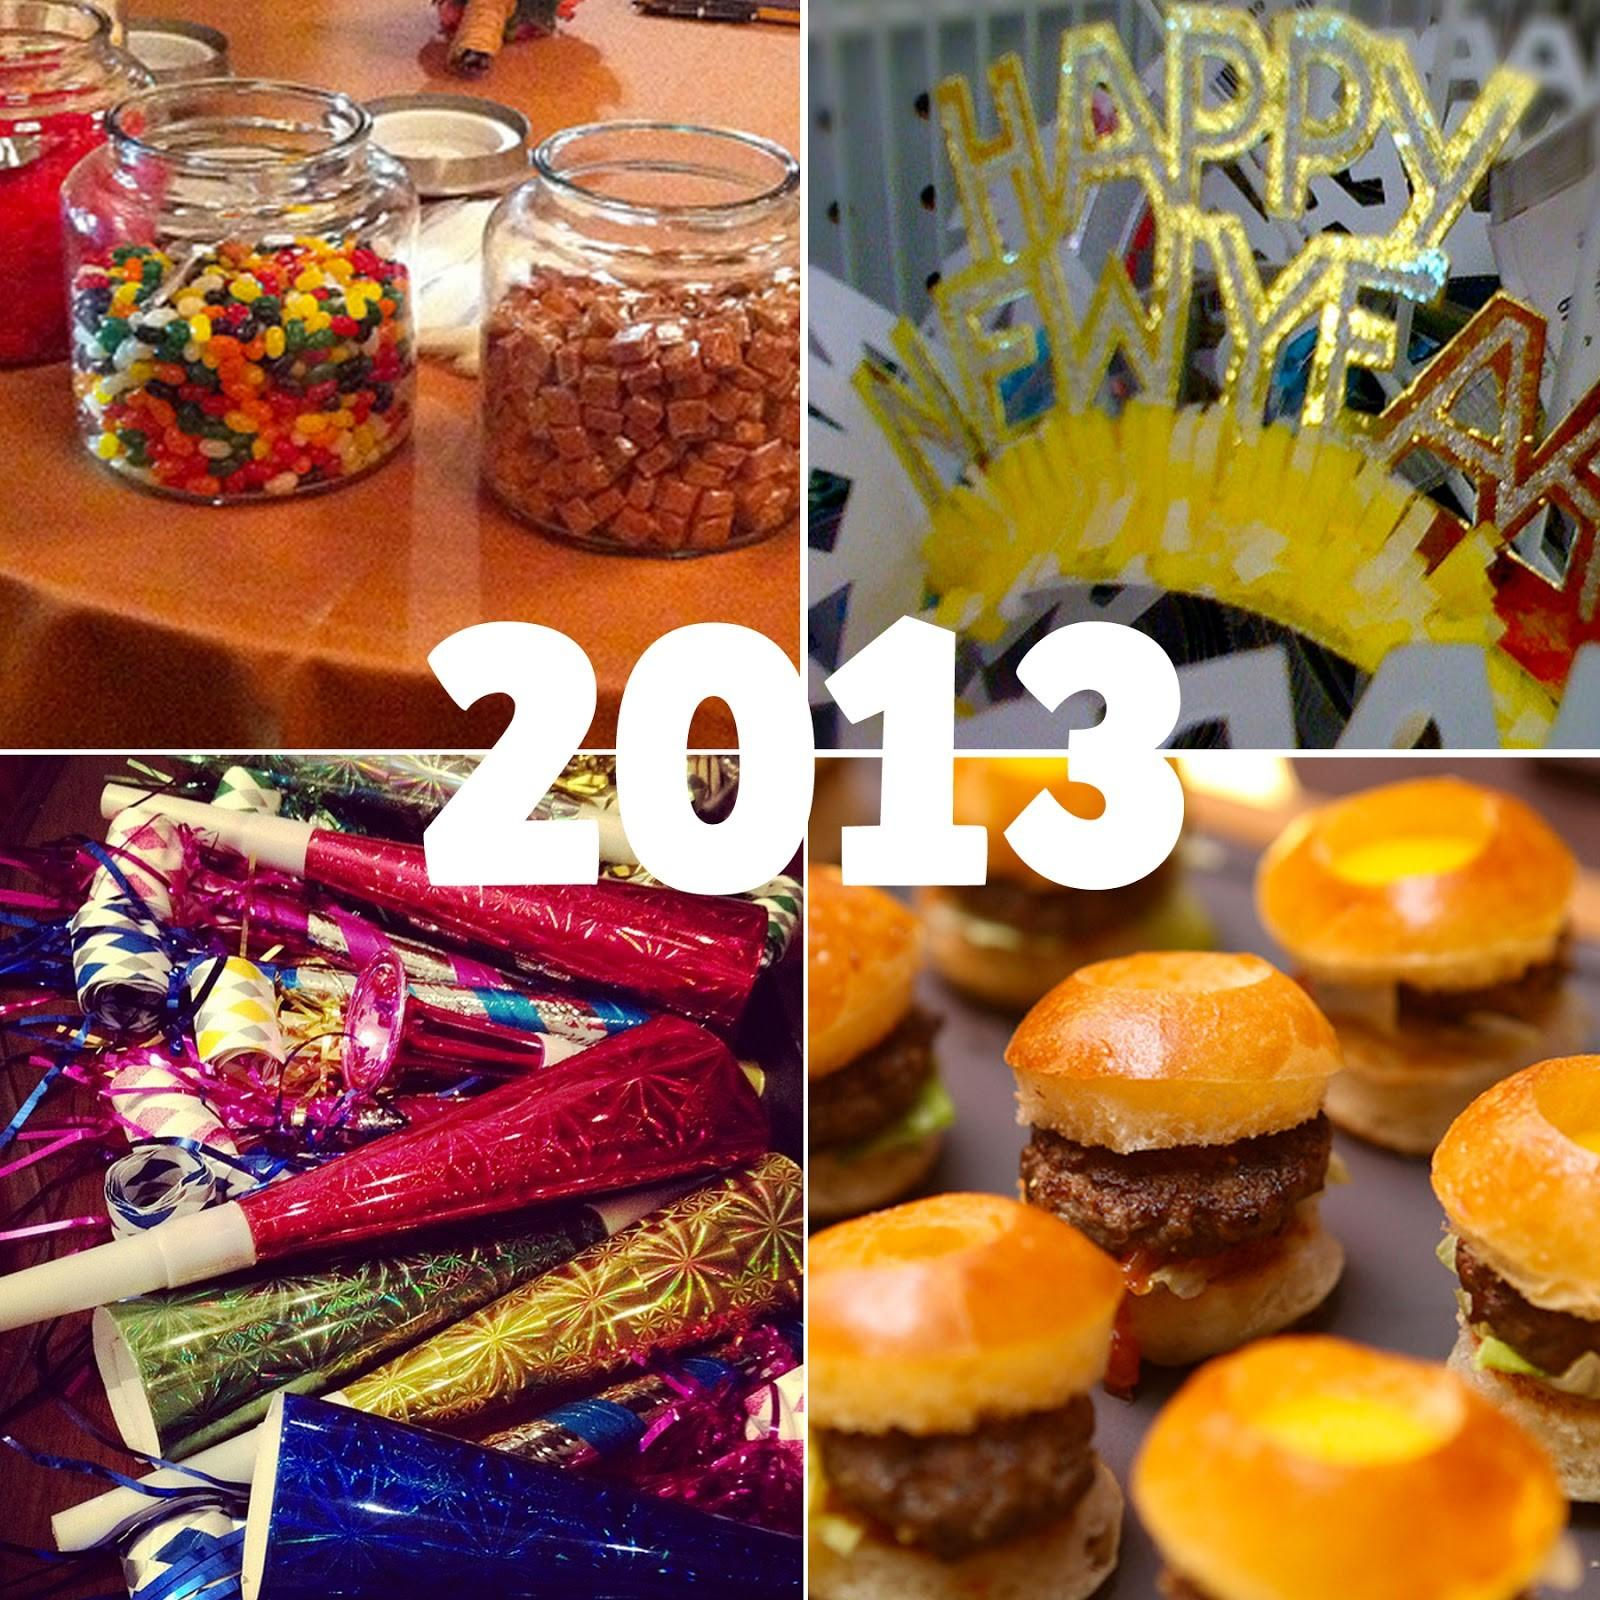 Honey Butter New Year Eve Party Favor Ideas